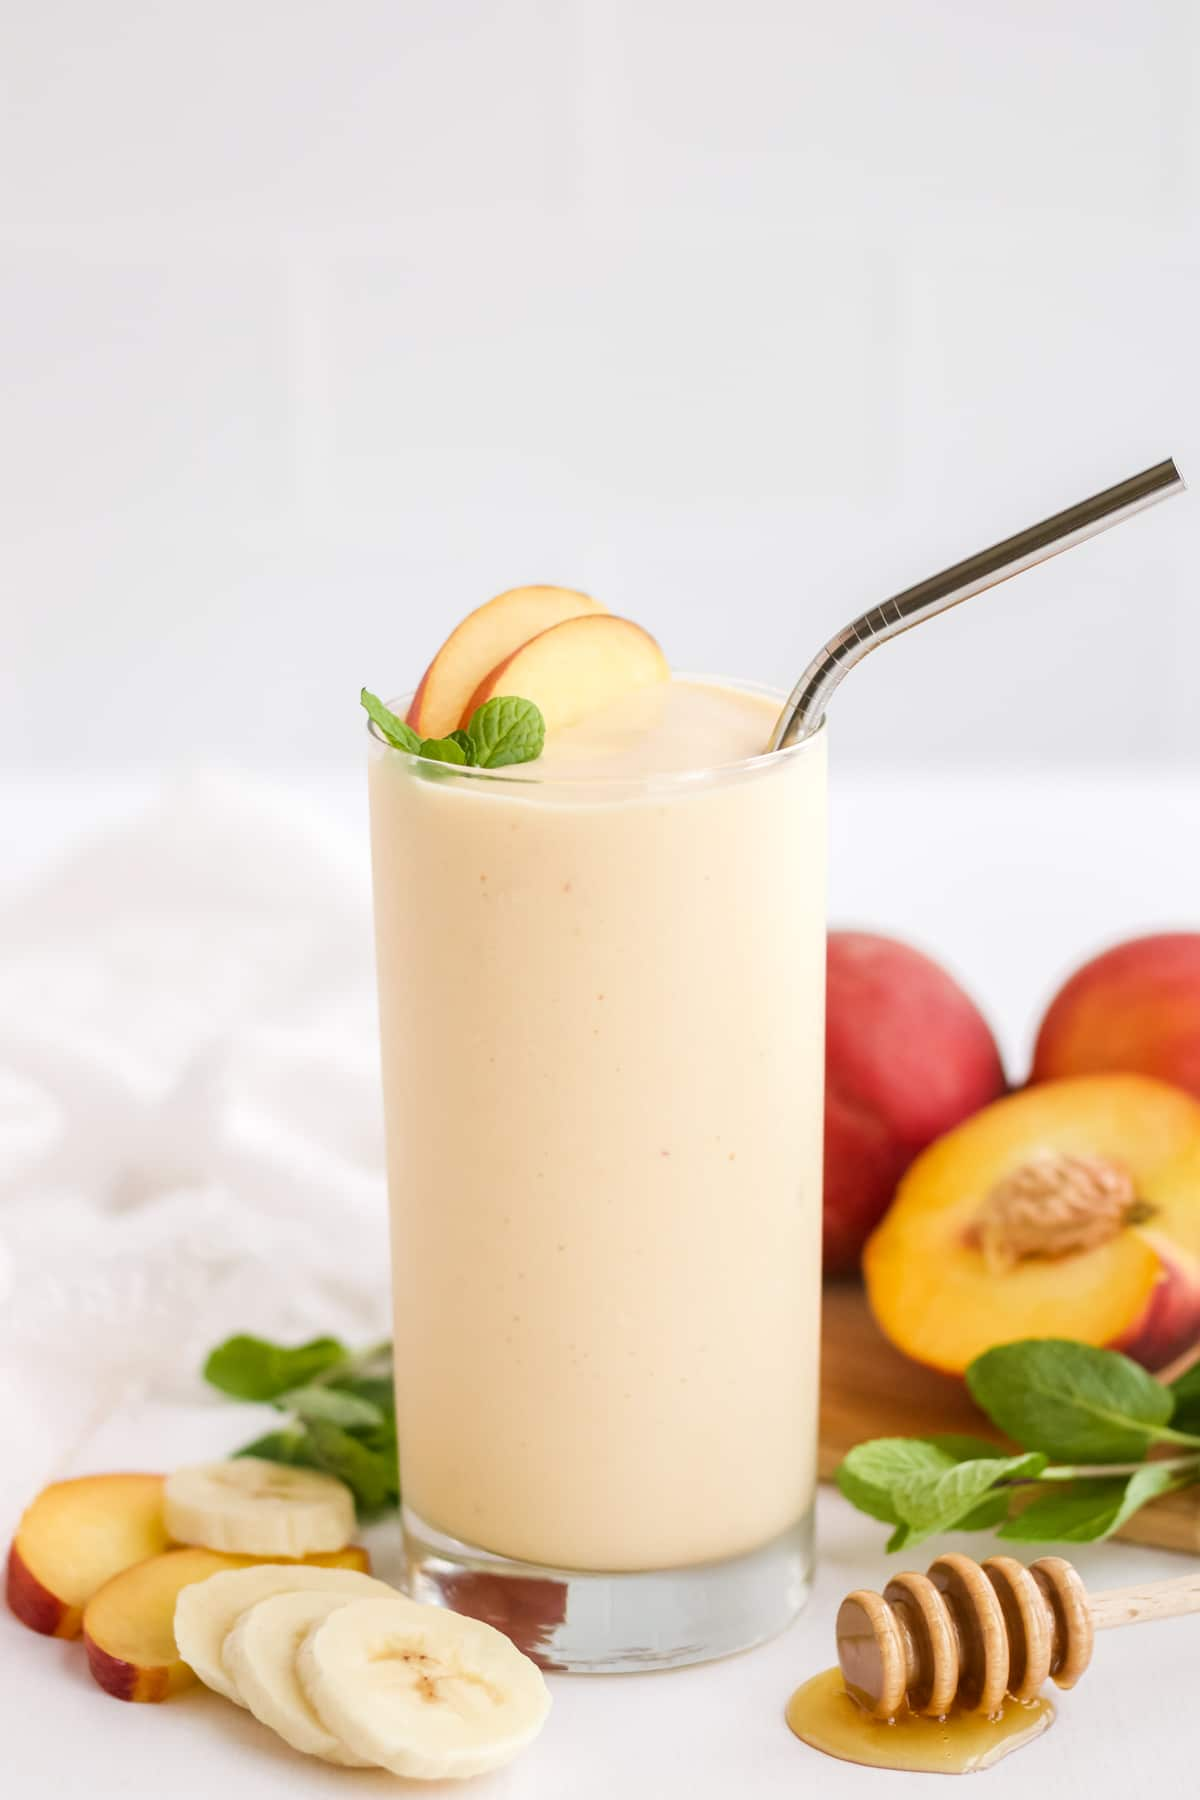 A single glass of peach smoothie garnished with peach slices and a sprig of mint.